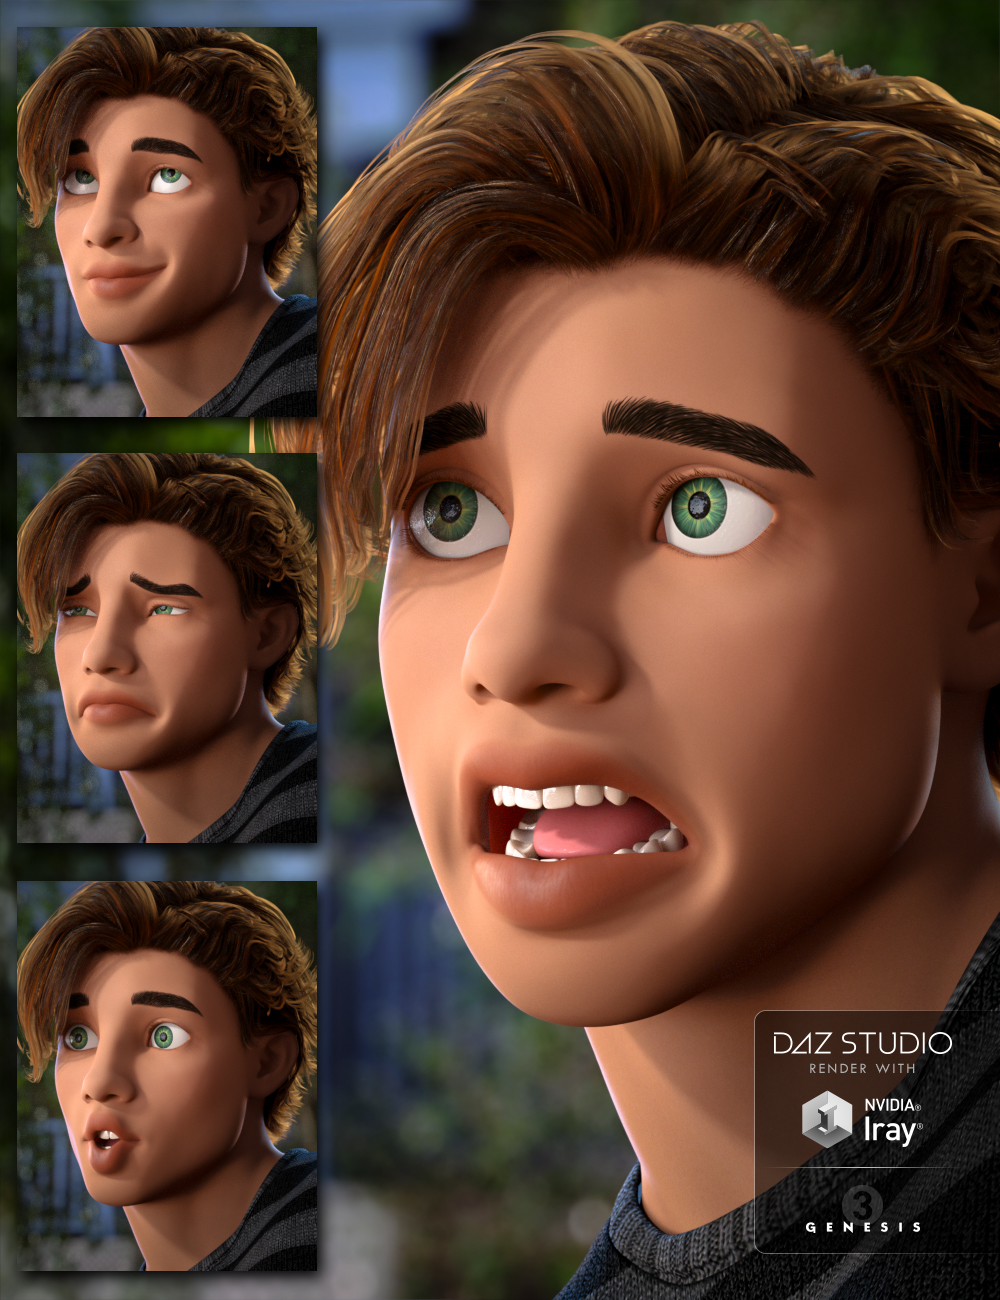 Capsces Tooned Expressions for The Guy 7 by: Capsces Digital Ink, 3D Models by Daz 3D